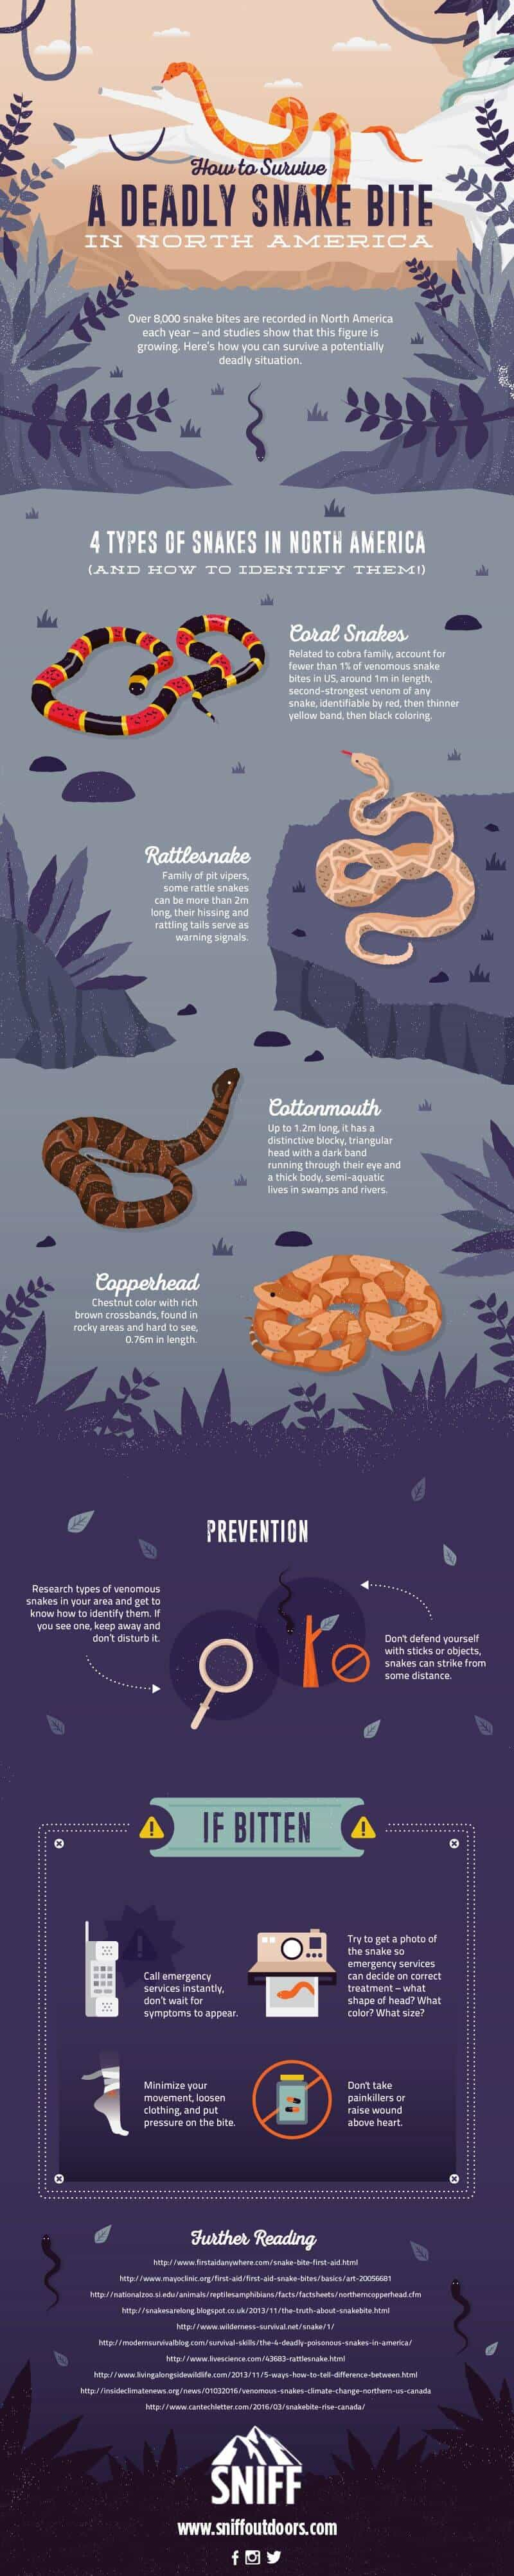 Deadly Snake Guide - Infographic